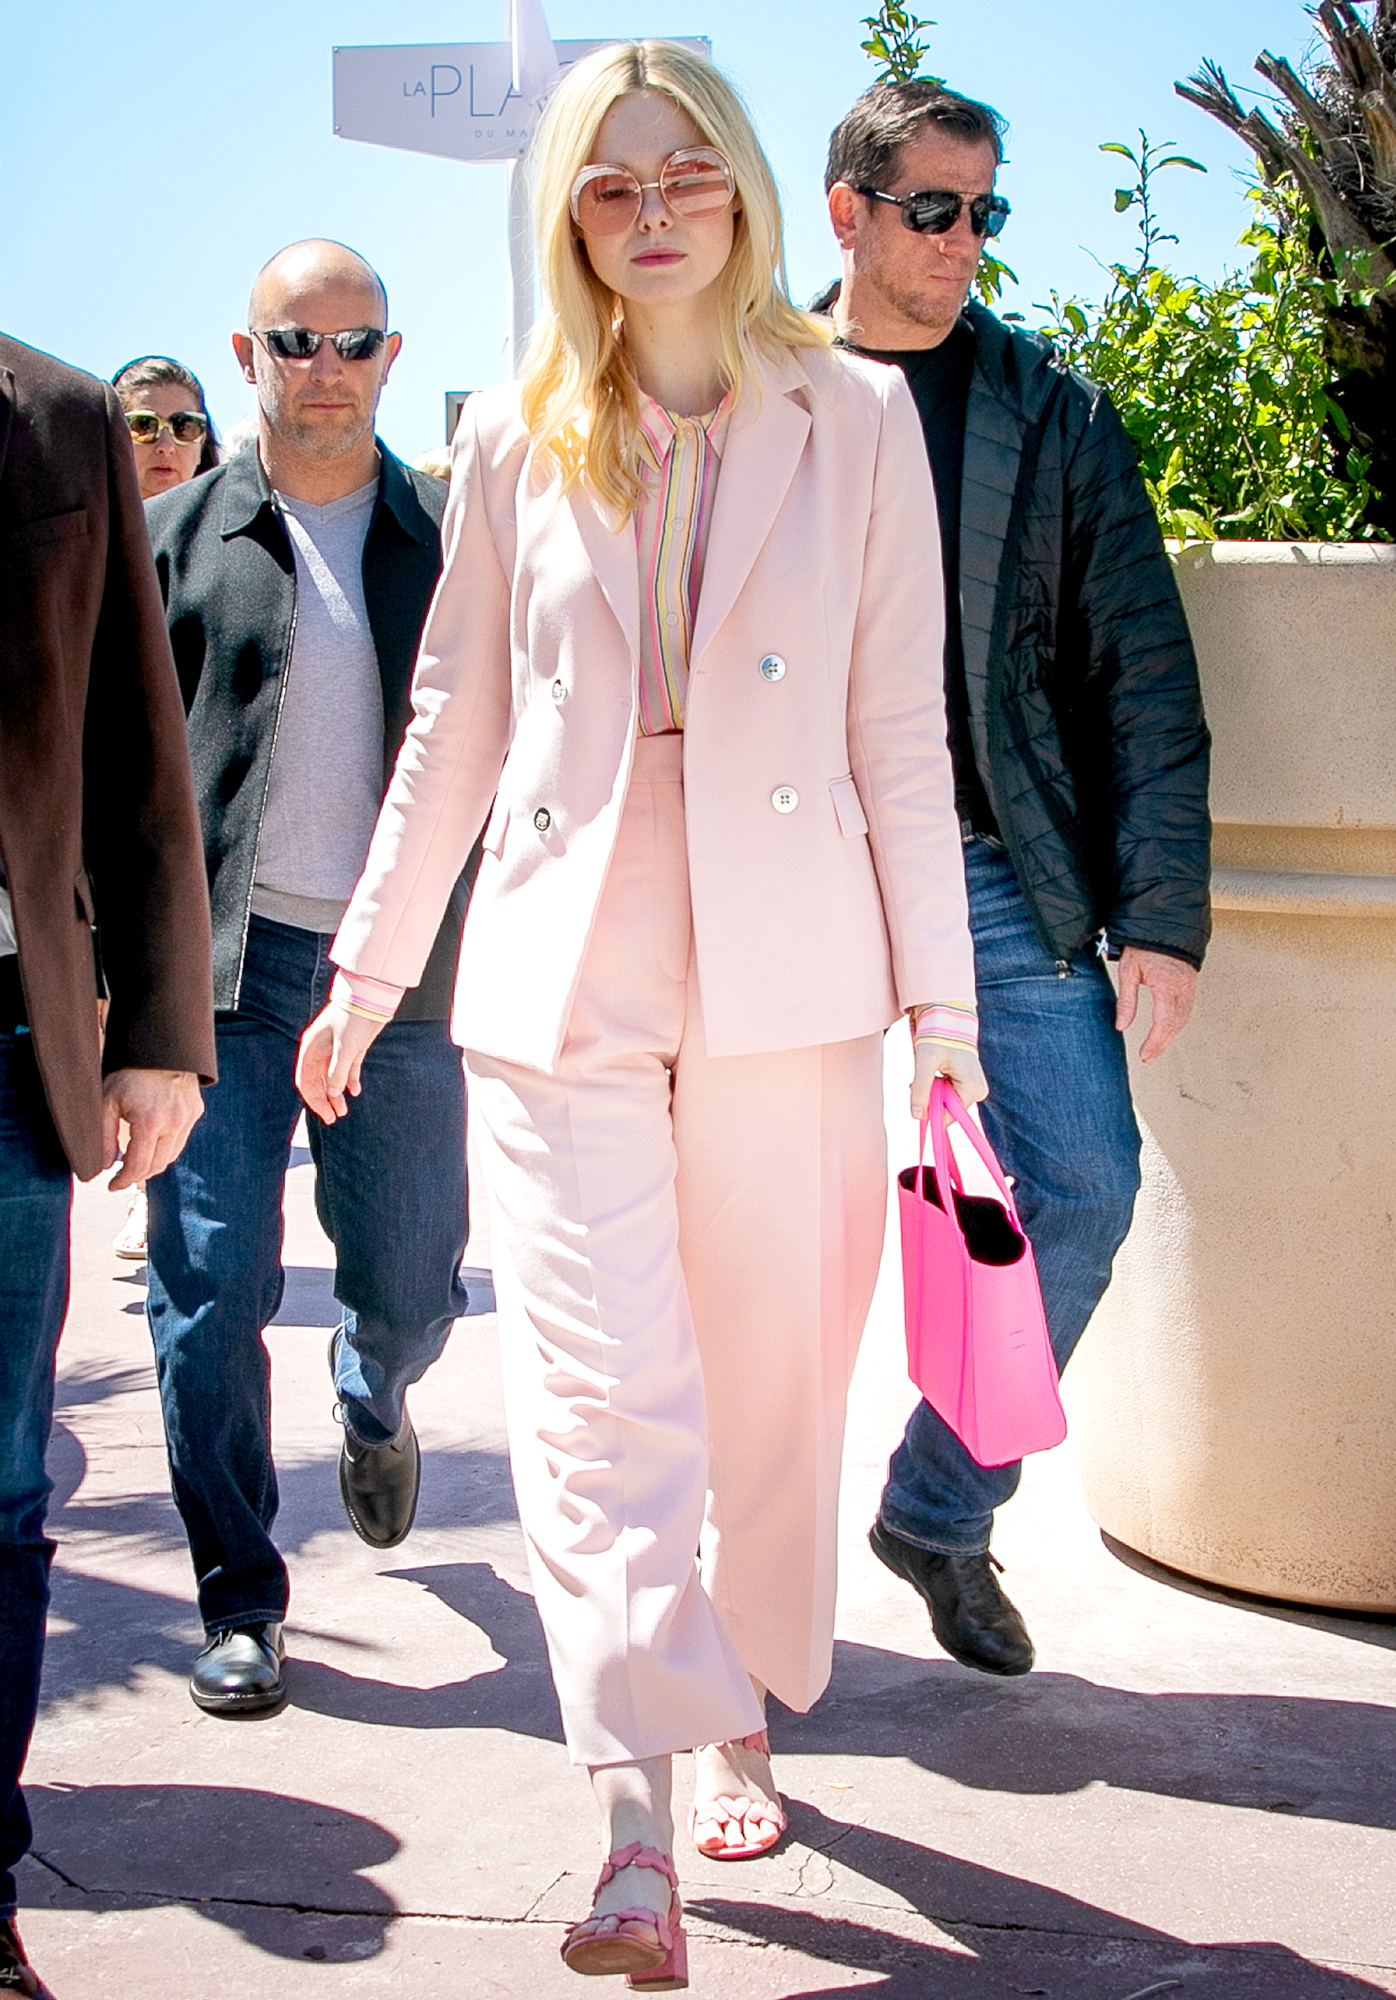 Elle-Fanning - The jurist was pretty in head-to-toe pink on Wednesday, May 15.